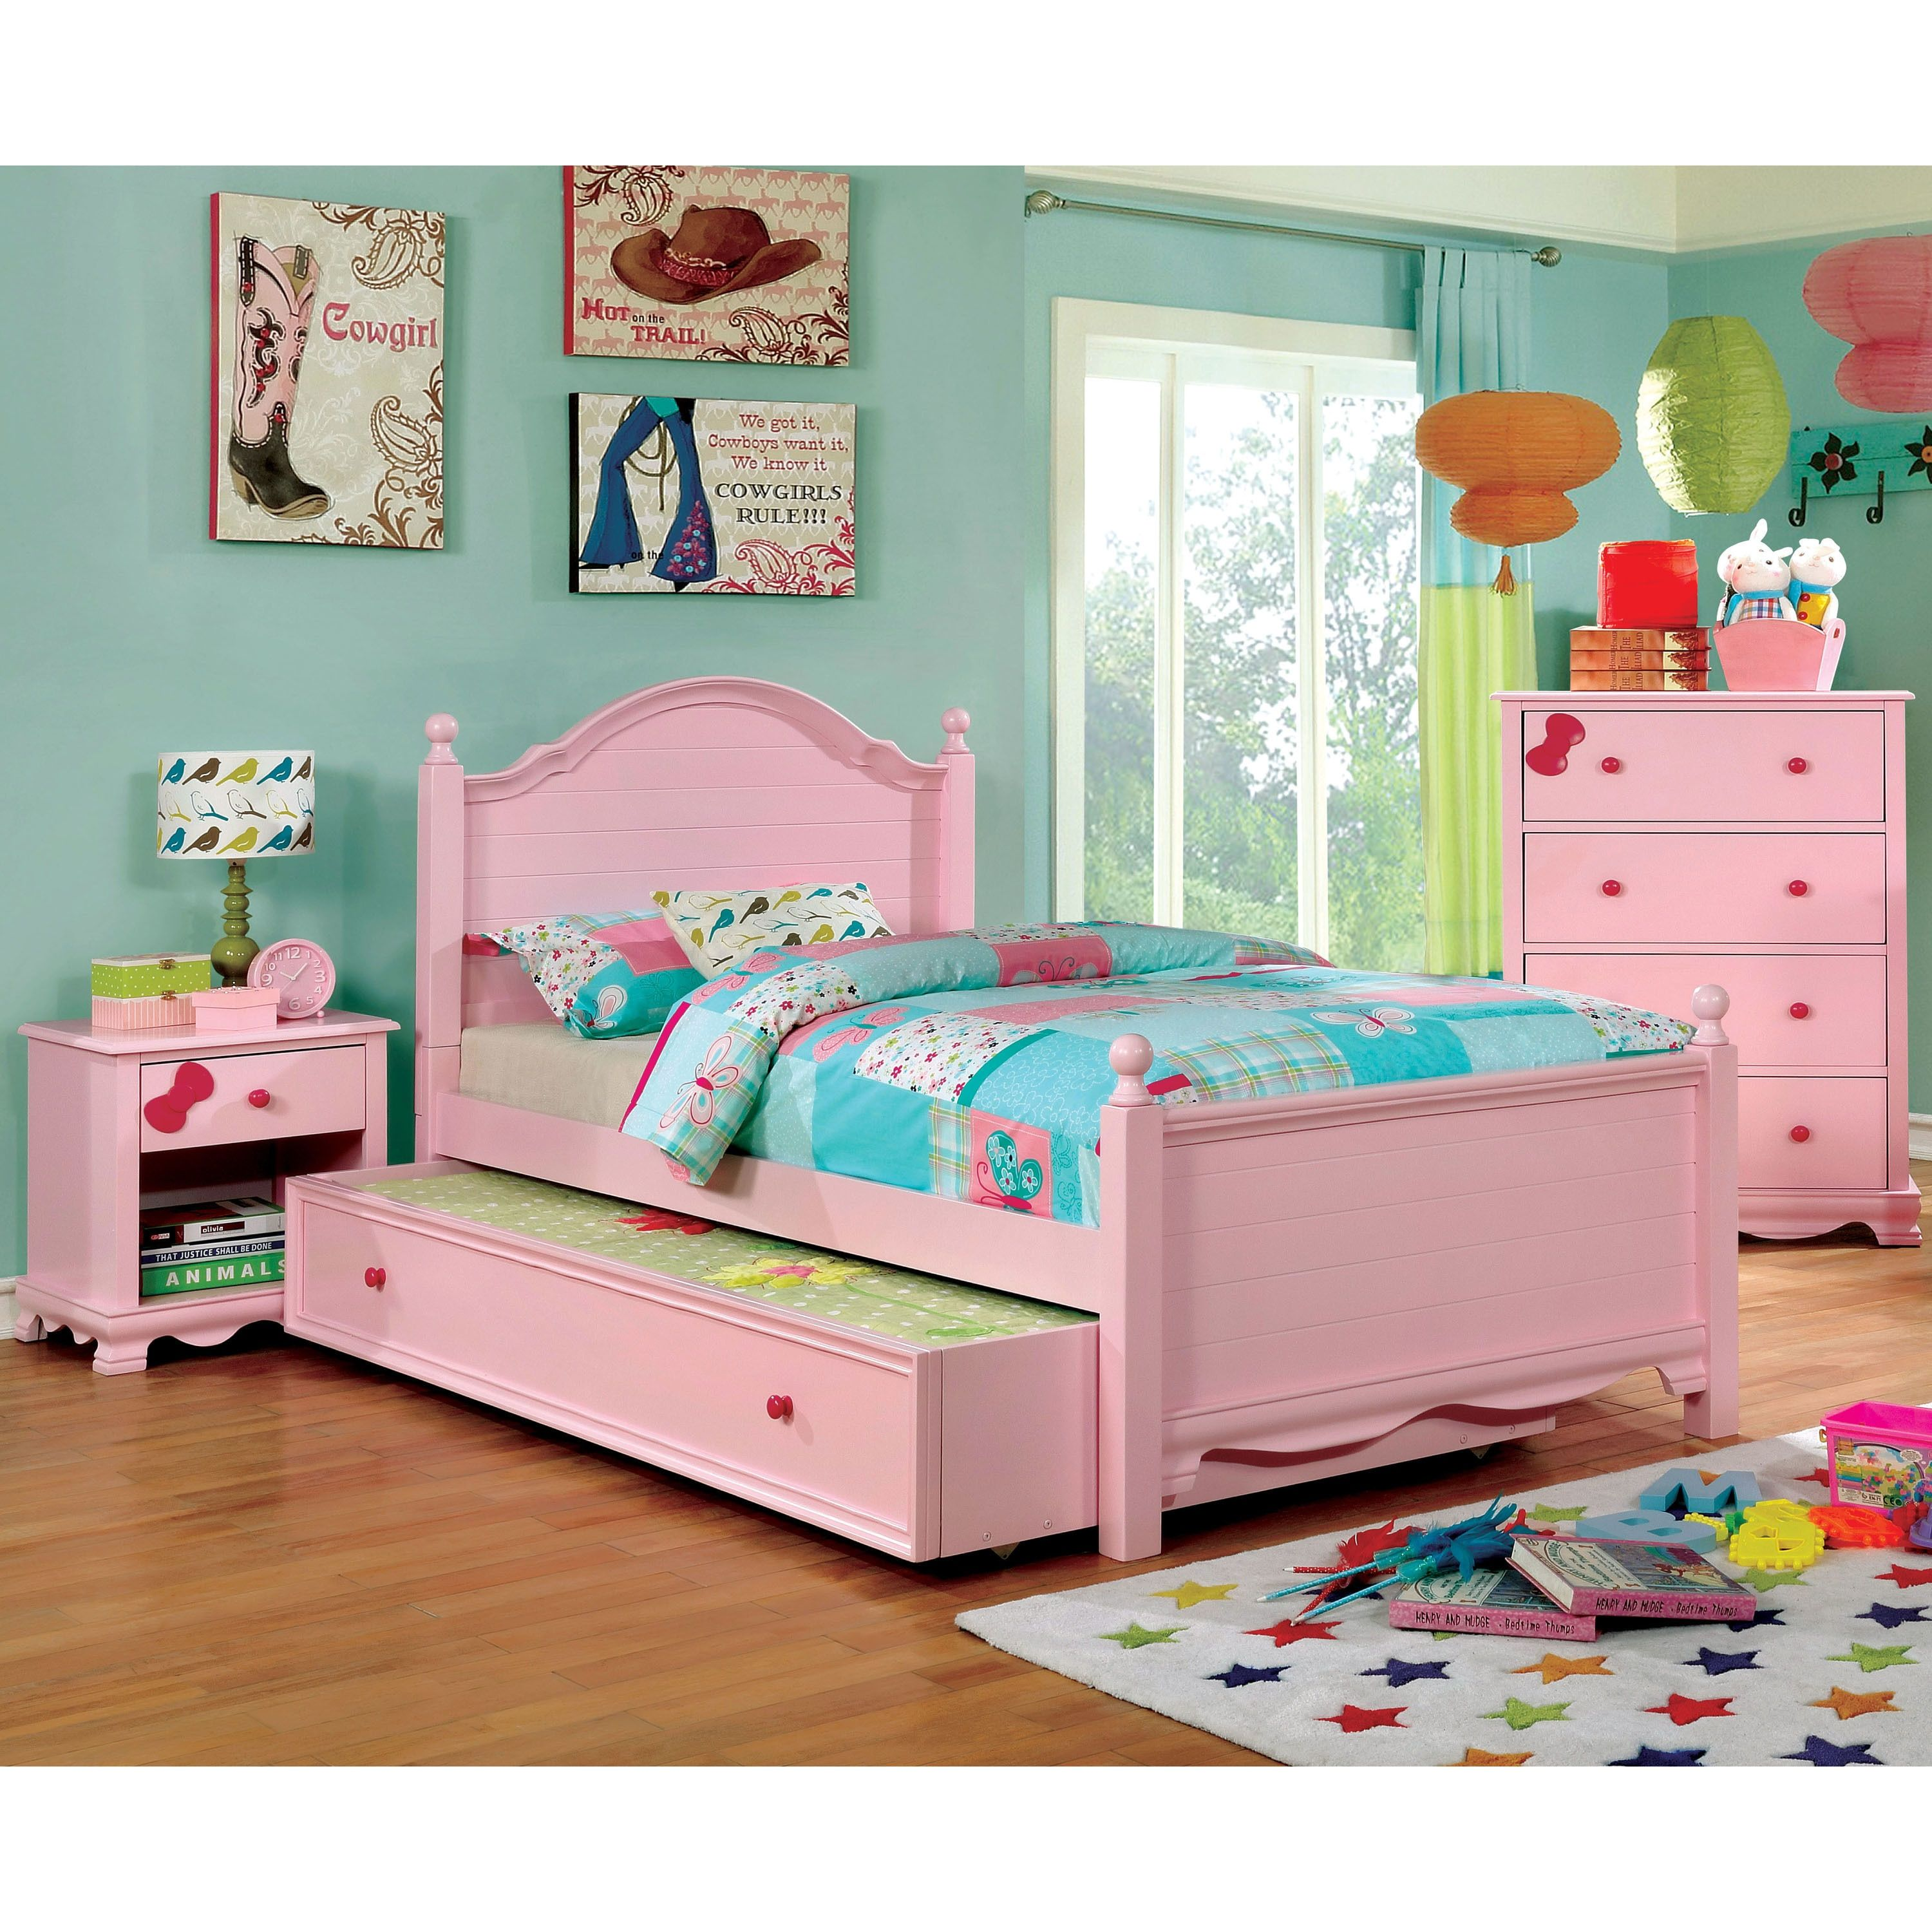 Online Shopping - Bedding, Furniture, Electronics, Jewelry